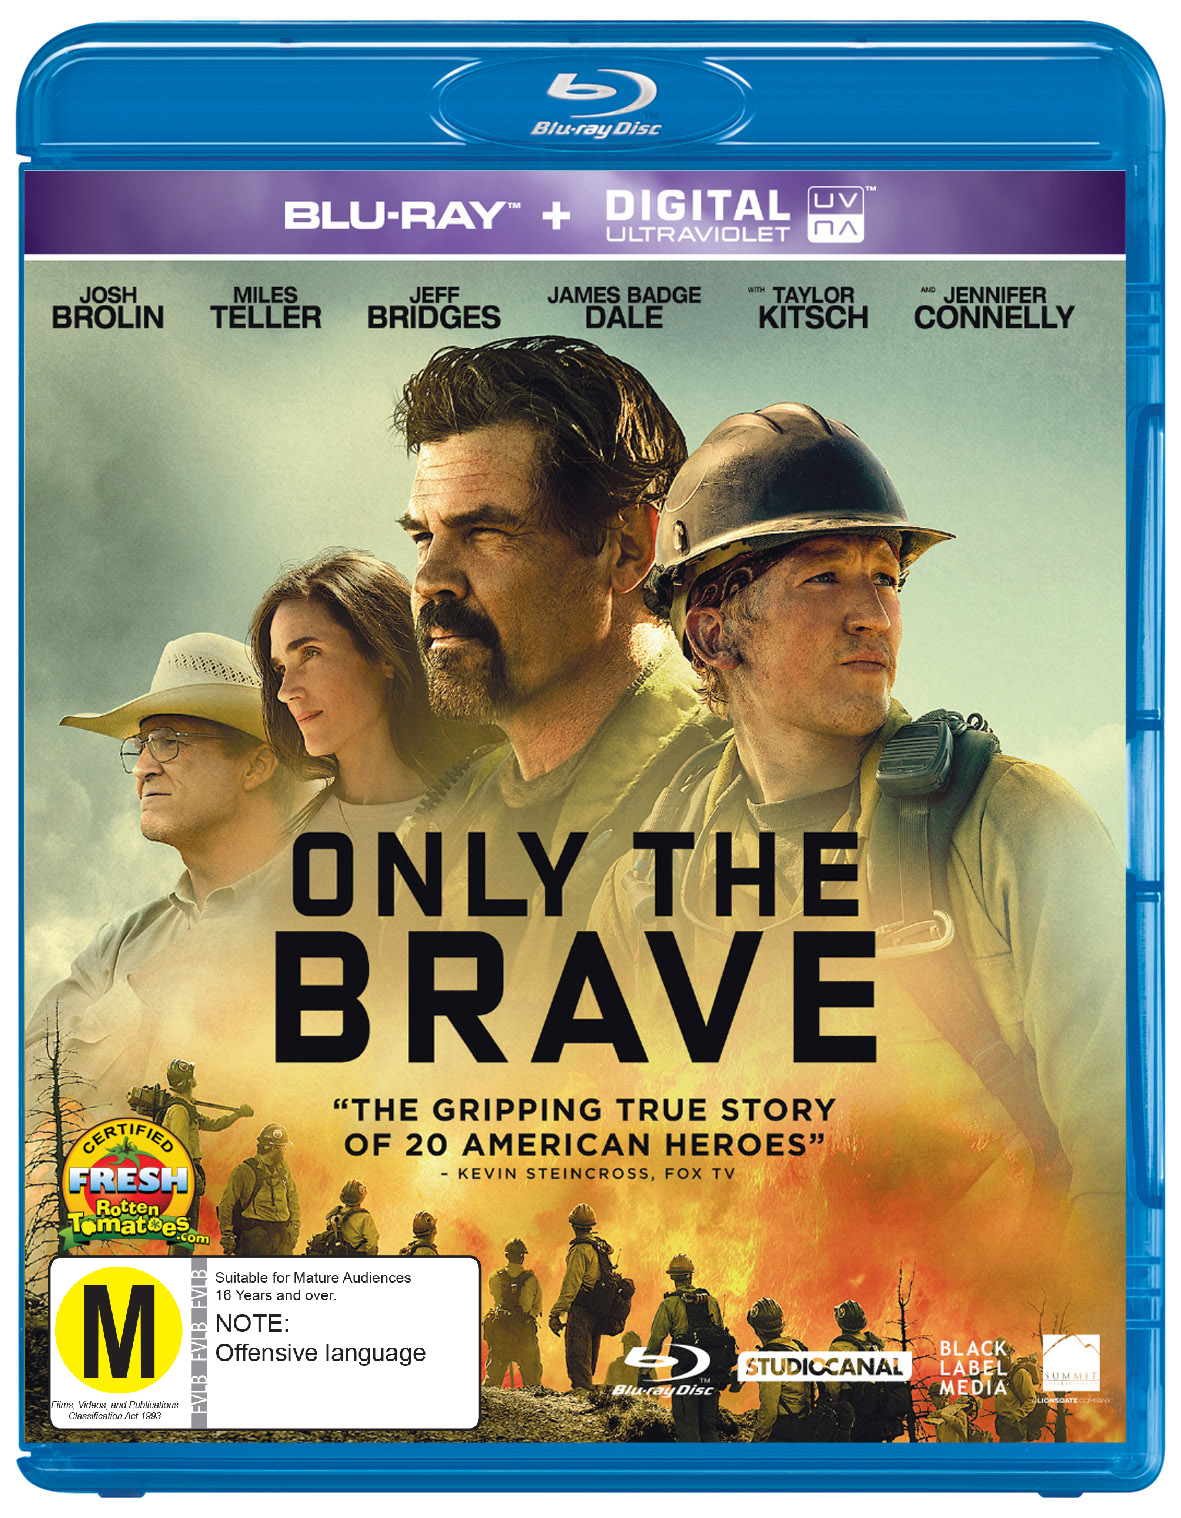 Only The Brave on Blu-ray image